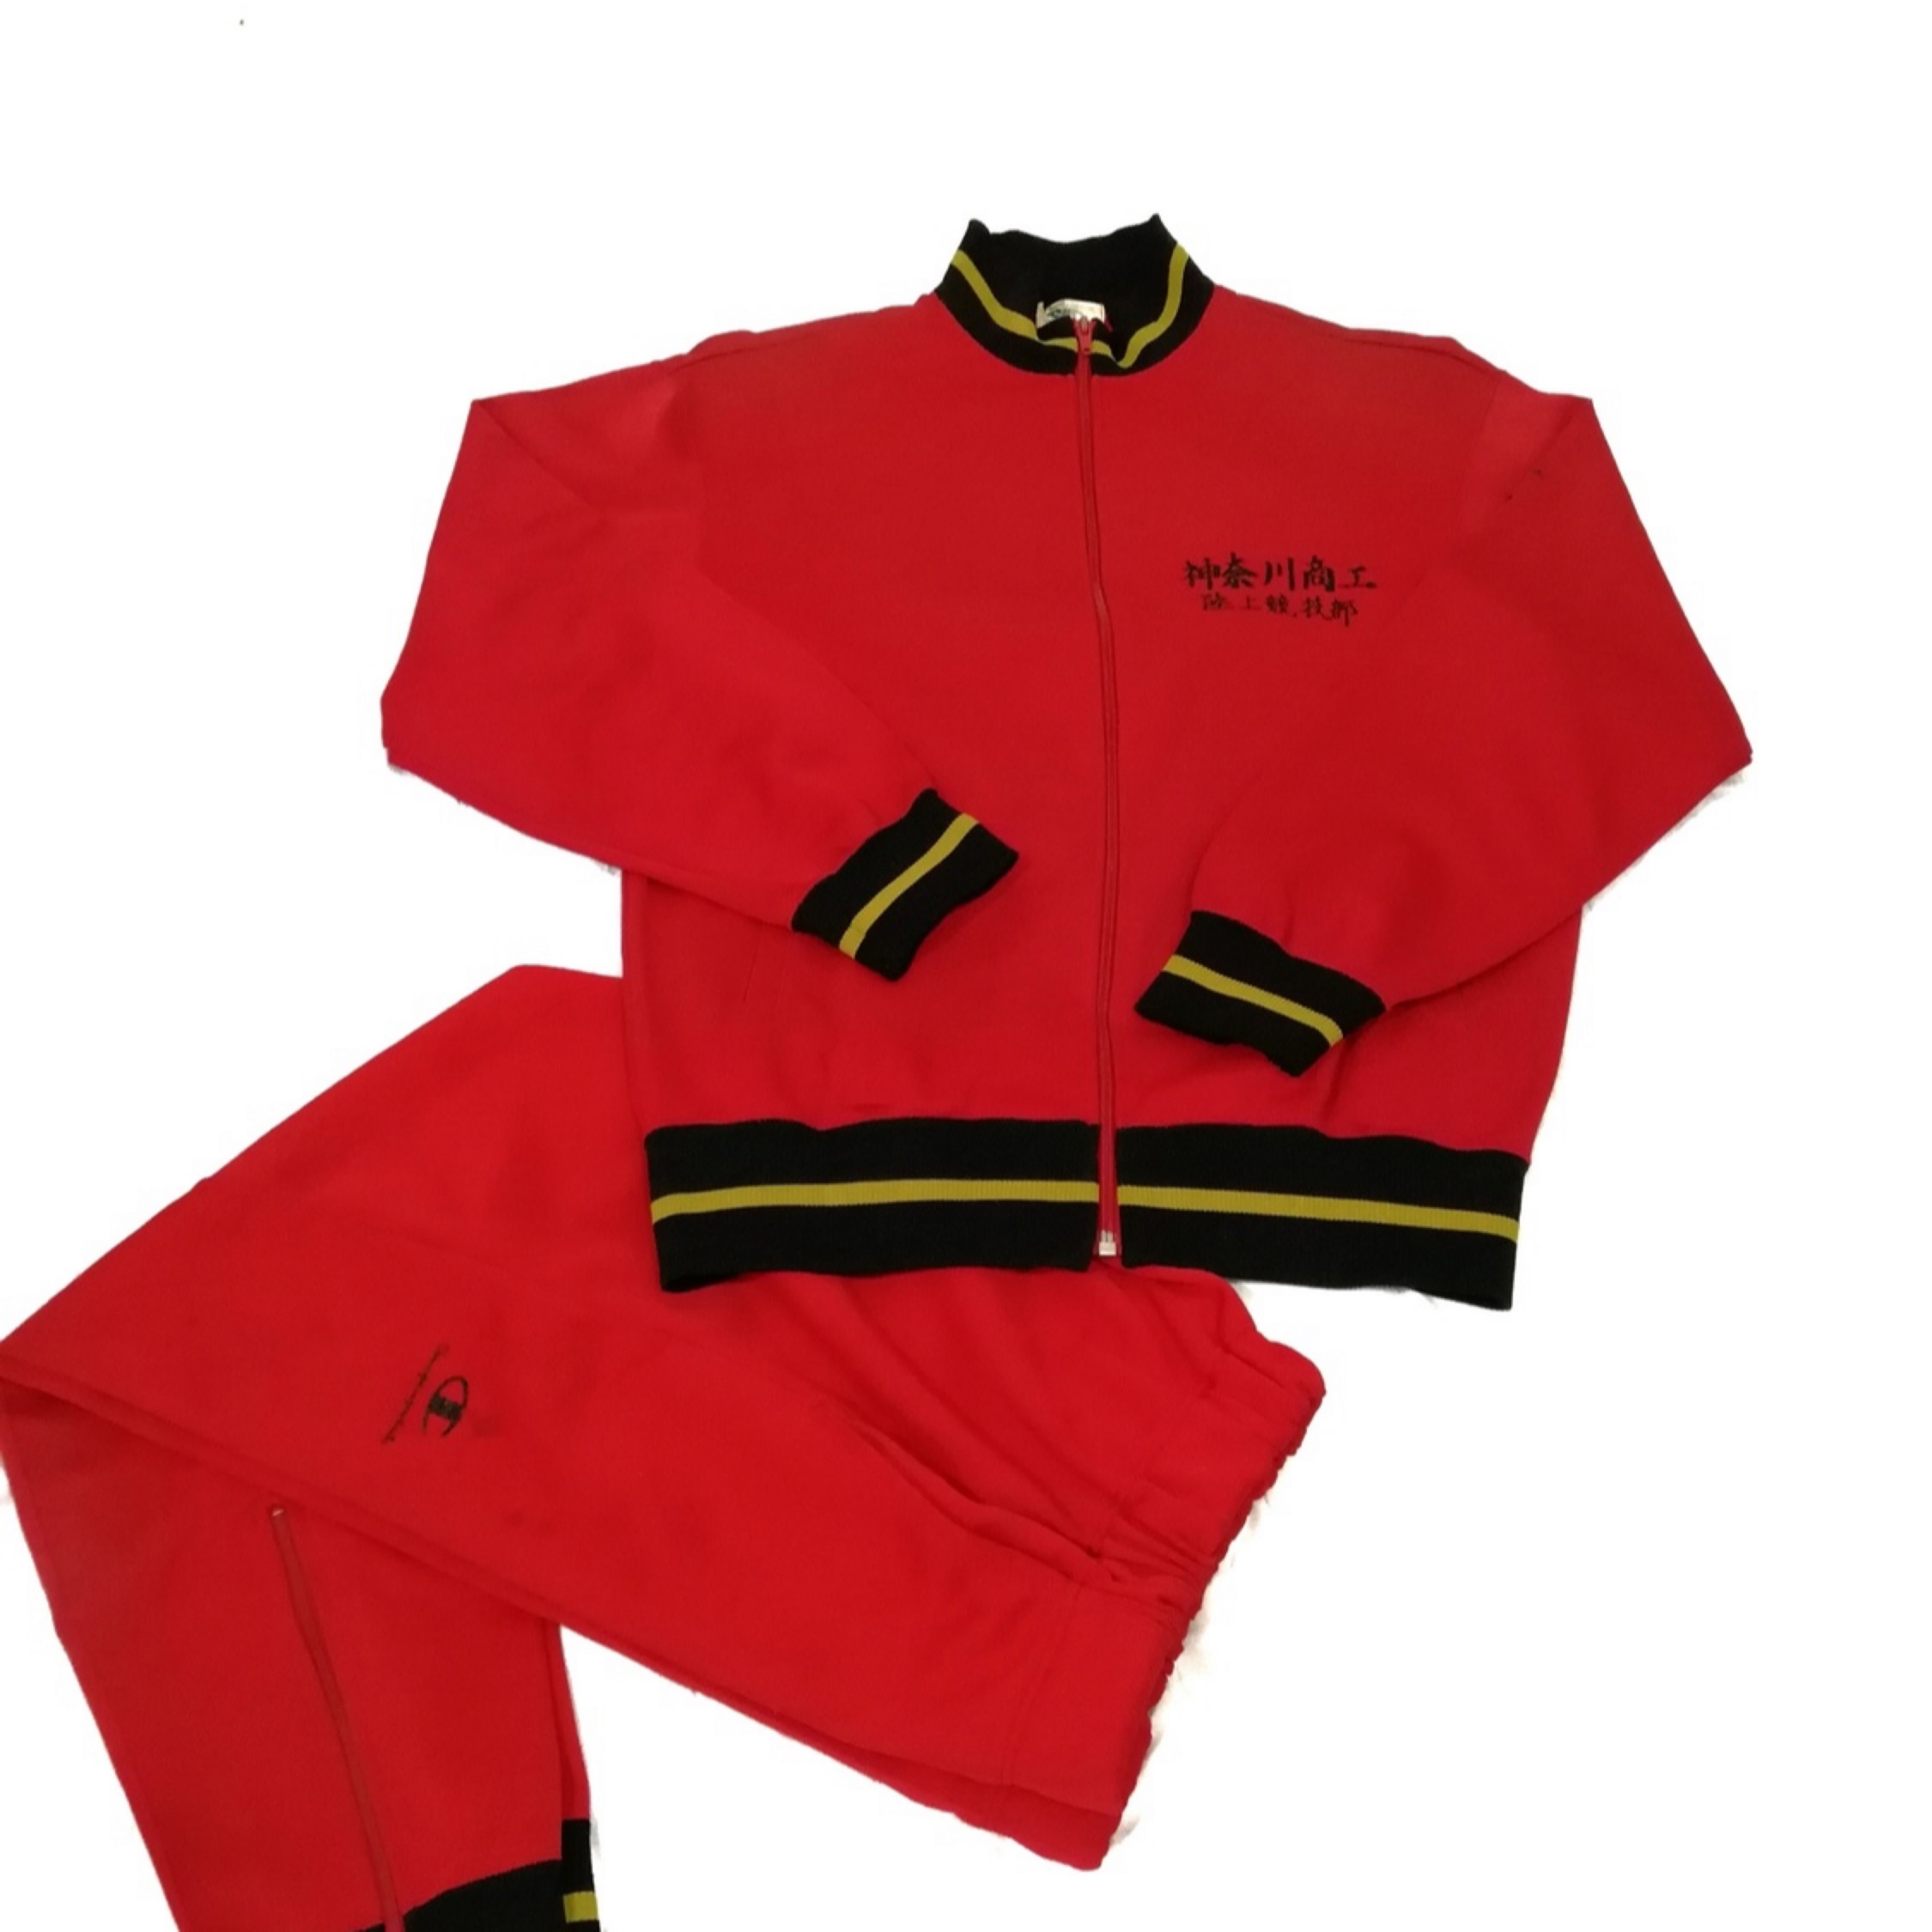 Vintage Champion Track And Field Suit